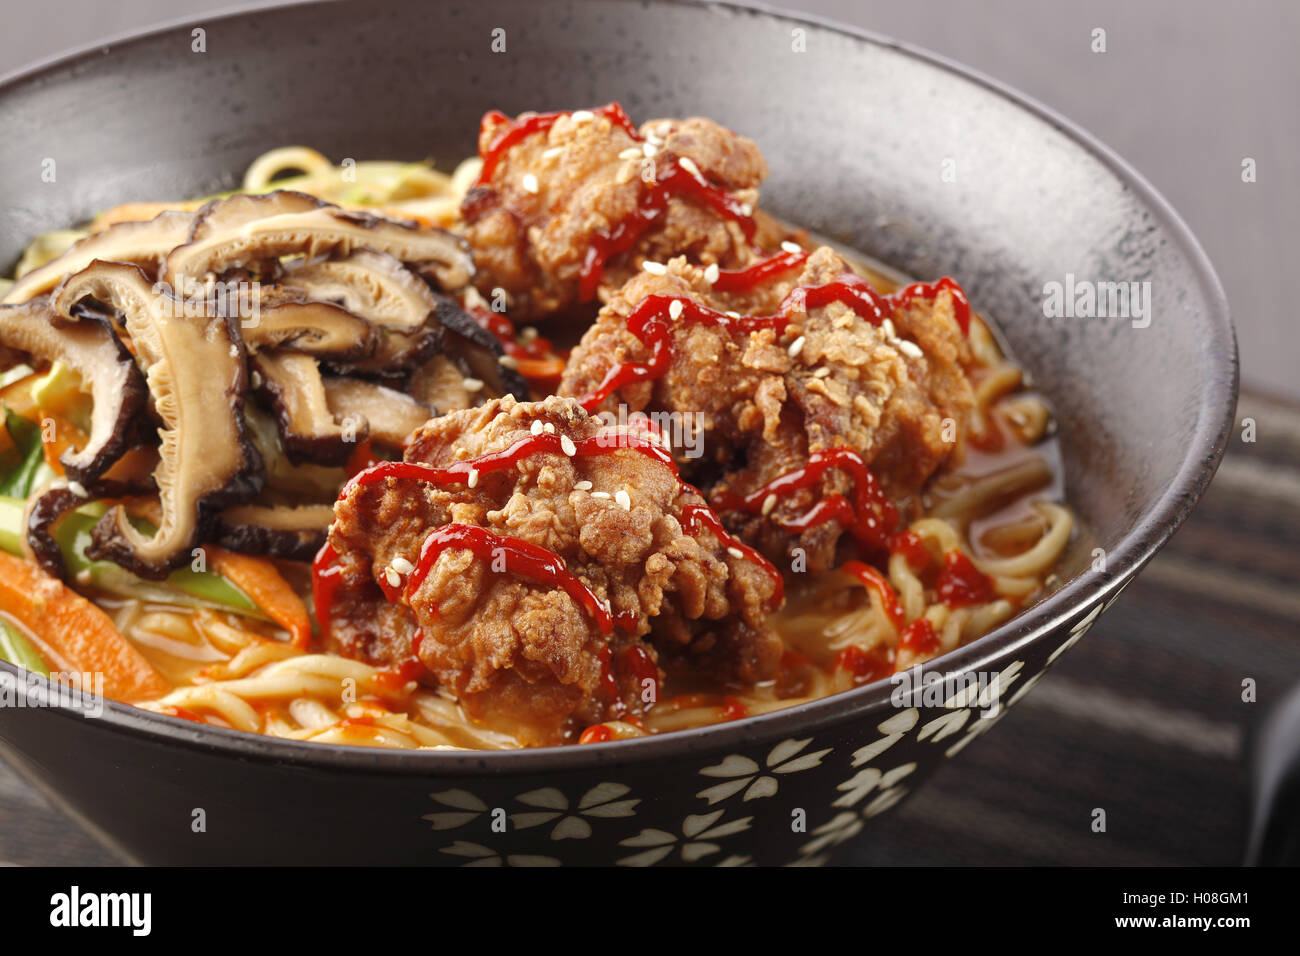 The chicken in Karaage Tantamen with deep-fried boneless chicken and shiitake mushrooms and a few other vegetables - Stock Image